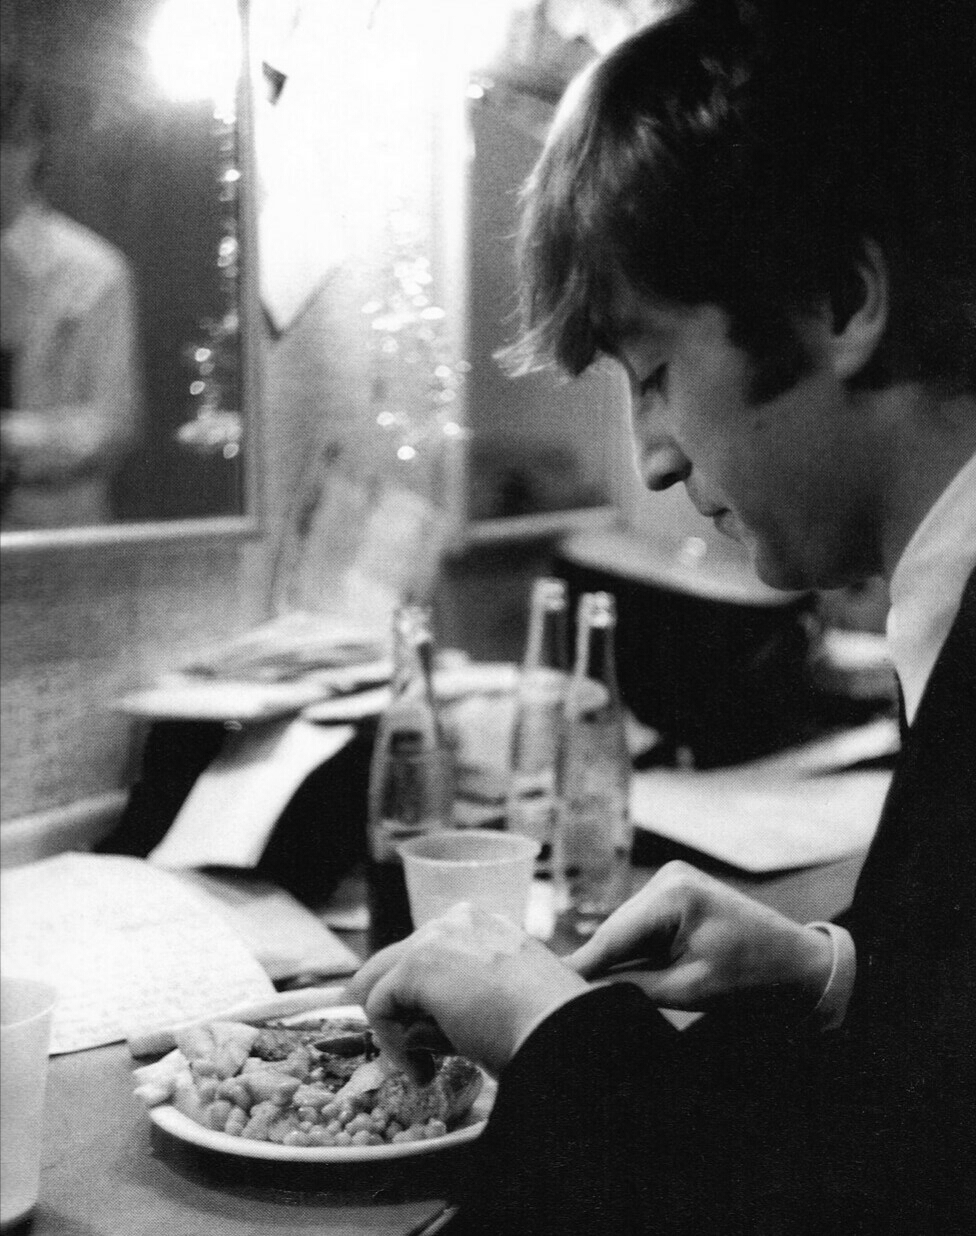 John Lennon enjoying chips and beans on the set of A Hard Day's Night, 1964.